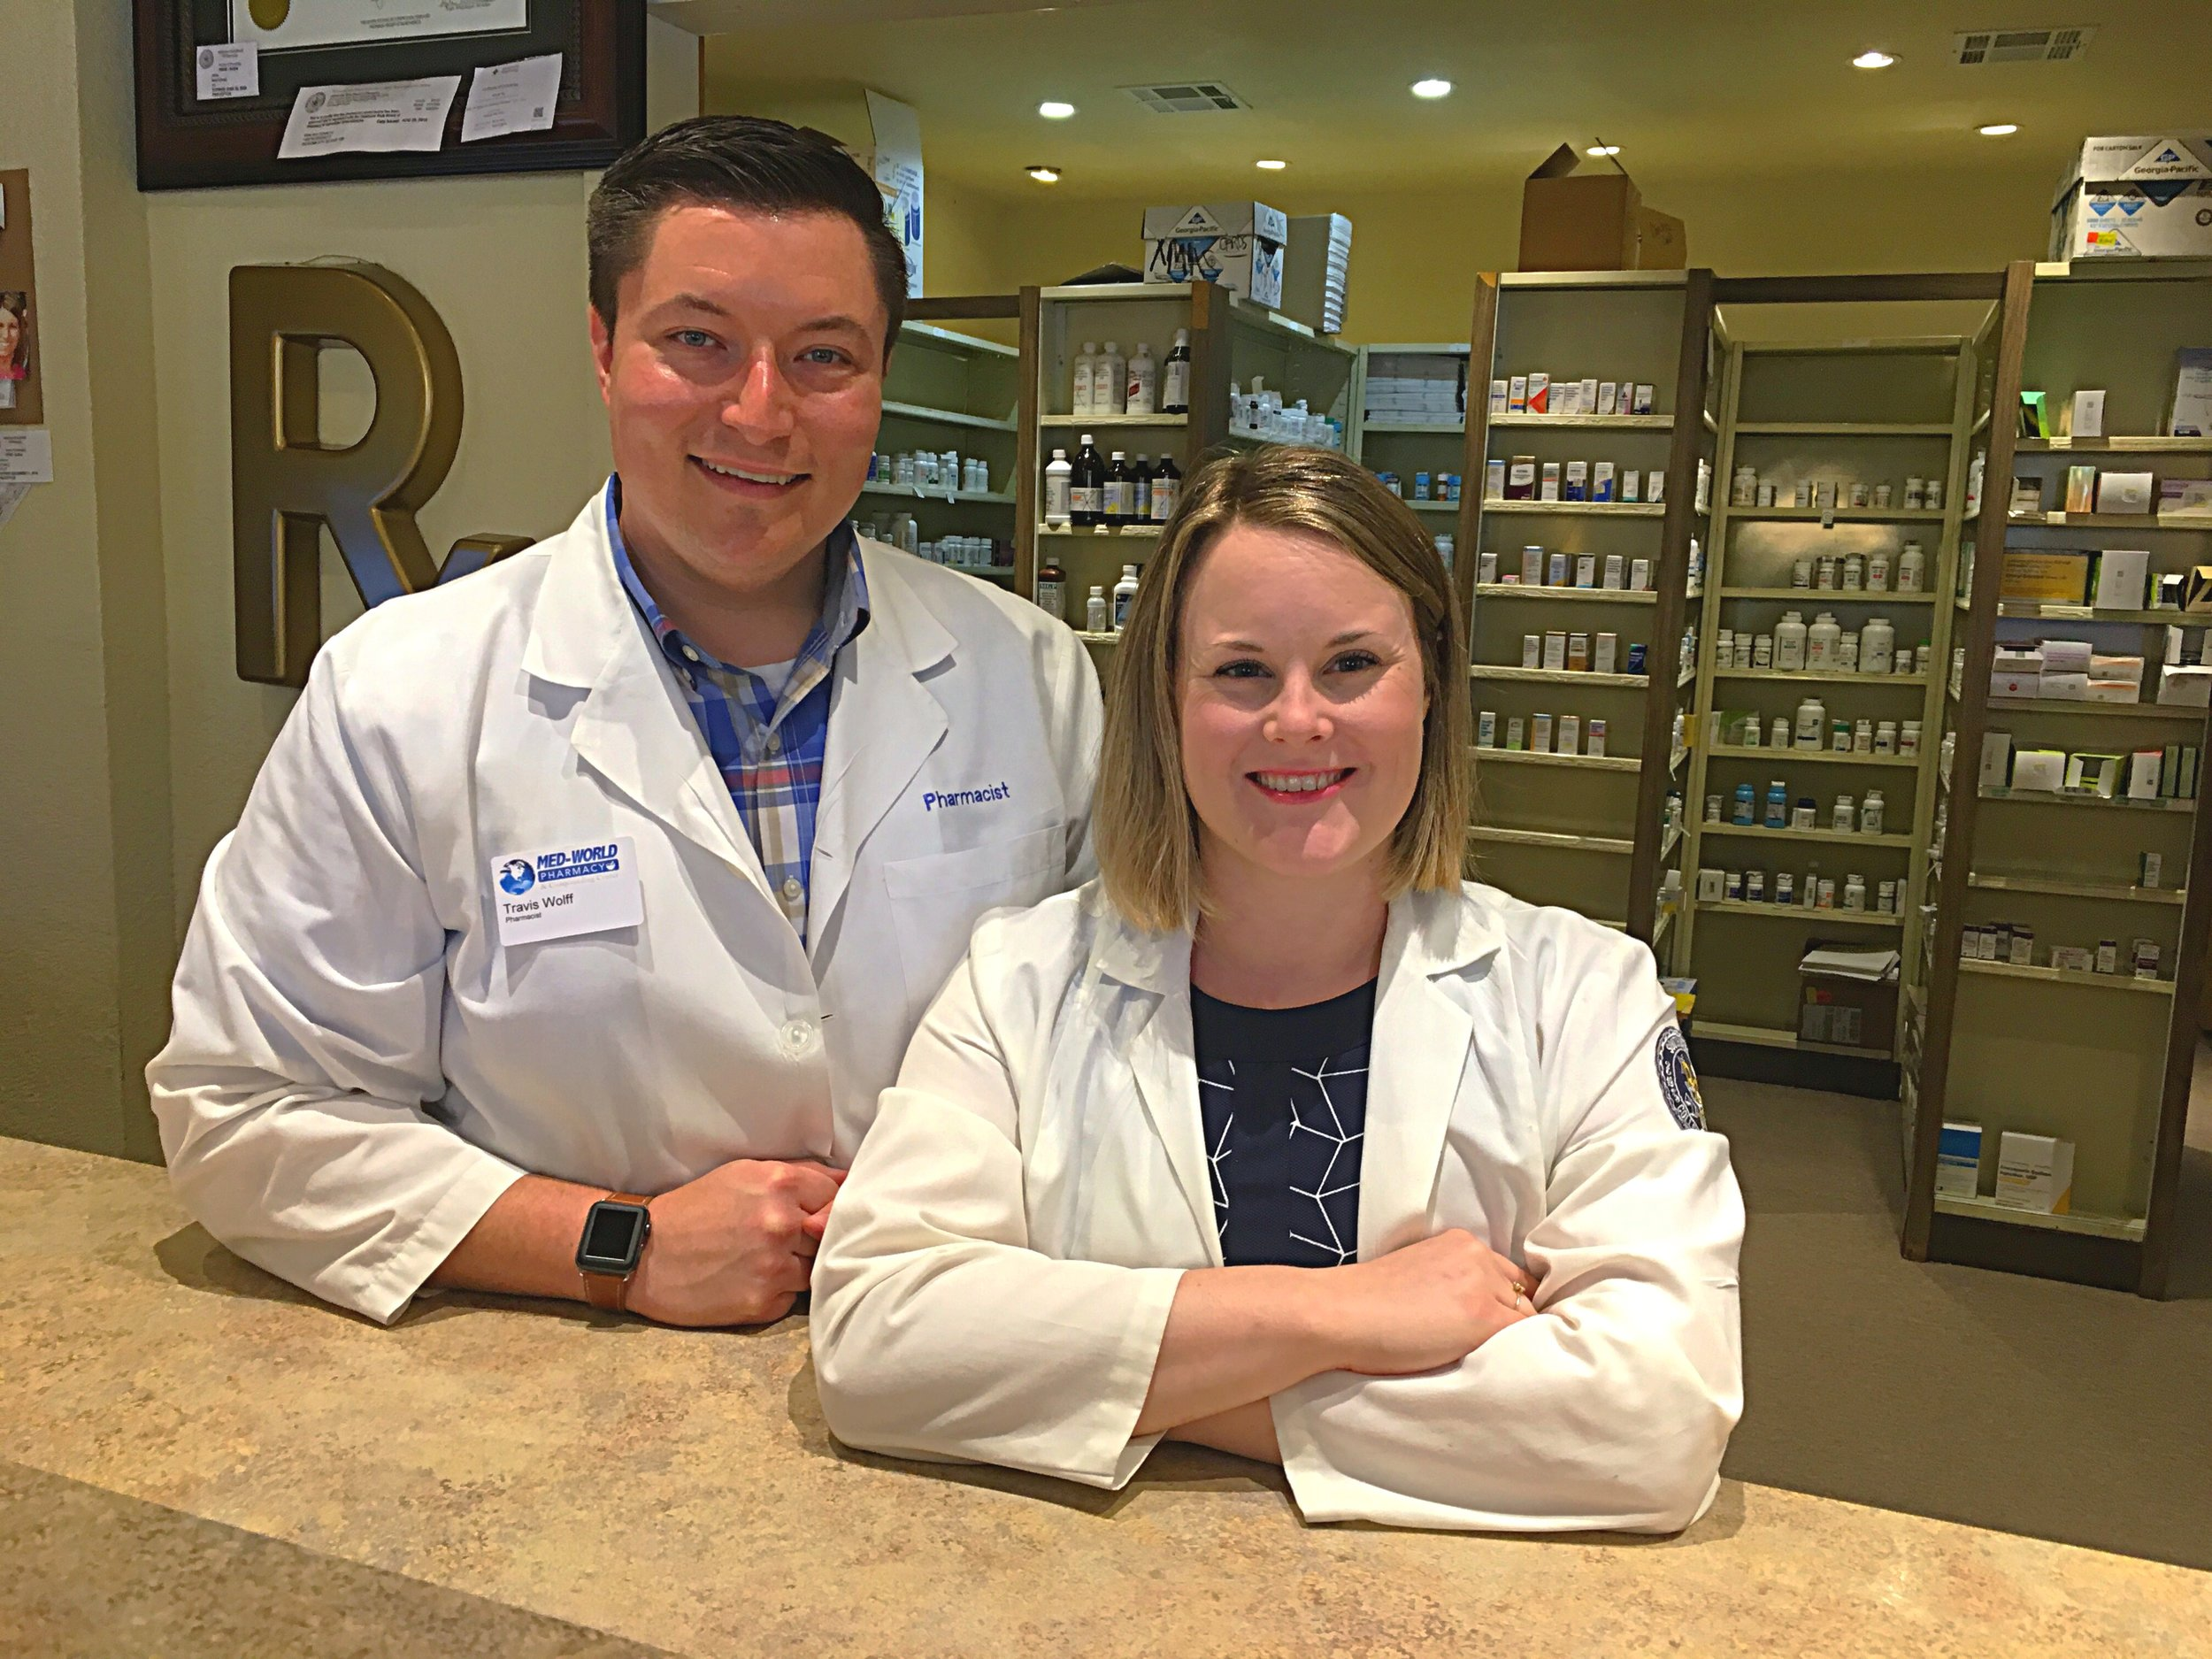 Travis and Sunni Wolff, PharmDs - Travis Wolff, PharmD, BCACPTravis is a community pharmacist and pharmacy owner of Med-World Pharmacy in Sapulpa and Apothecary Pharmacy in Mounds. He is a graduate of SWOSU College of Pharmacy. His passion lies in implementing clinical patient care models within a community pharmacy so that patients can have ultimate access to care. As a missionary to Haiti, Travis has long seen the need in this community and looks forward to serving alongside such exceptional people with CURA. Travis is married to his wife Sunni, and they have one son. He loves to read, cook, mow the yard, and work in his flower beds.Sunni Wolff, PharmDSunni is a graduate of Southwestern Oklahoma State University College of Pharmacy. She is a pharmacist at Med-World Pharmacy in Sapulpa and Apothecary Pharmacy in Mounds. Sunni and her husband Travis have one son, one dog, and one cat. Sunni enjoys coffee, reading, pilates, cooking, and working outside.